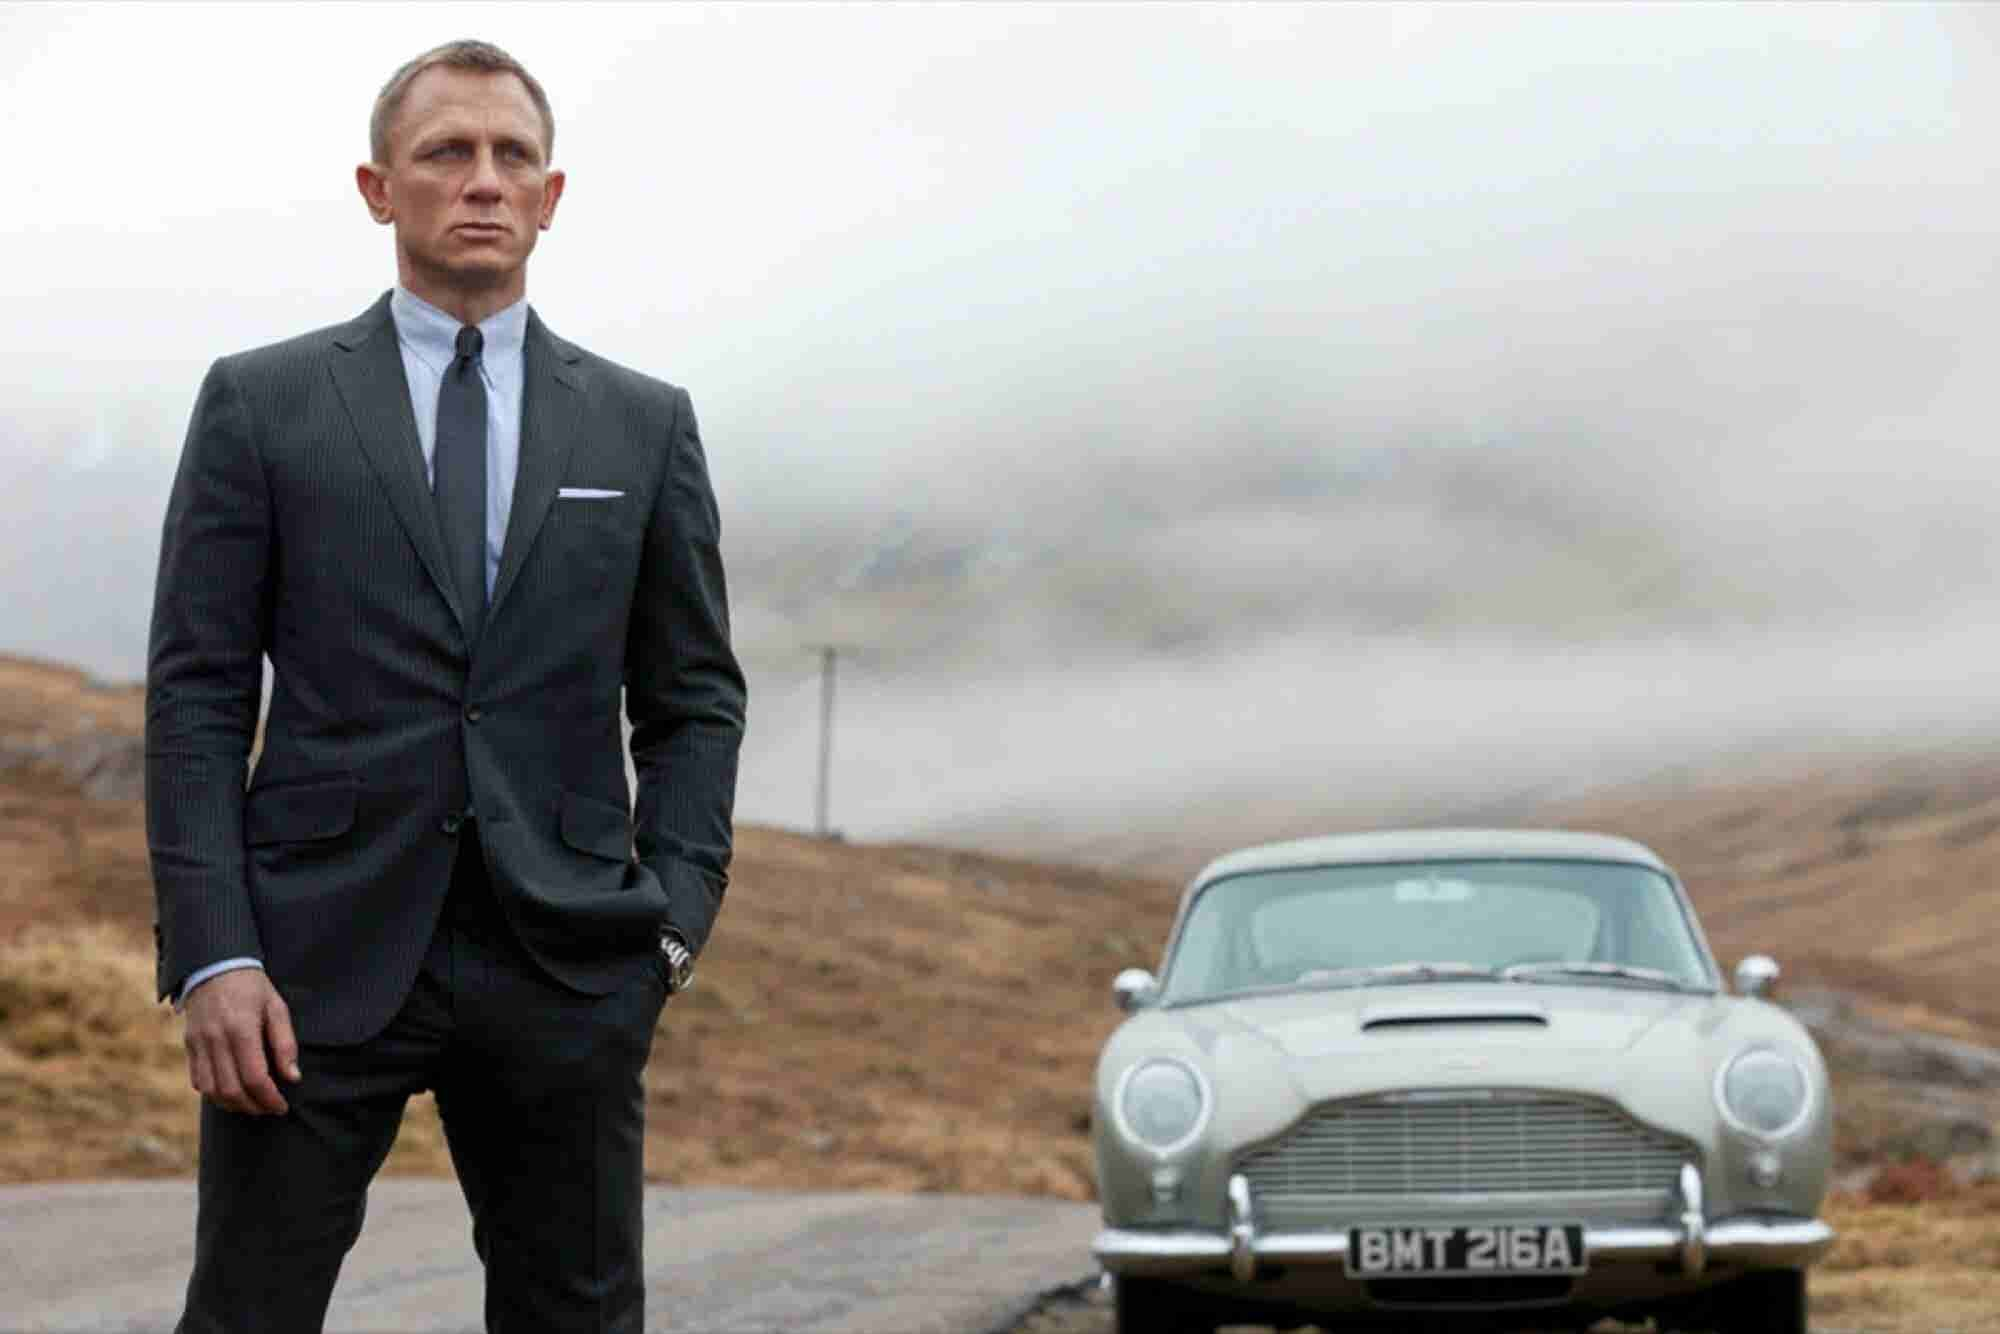 Want James Bond to Use Your Product? Hand Over $5 Million and Be 'the...